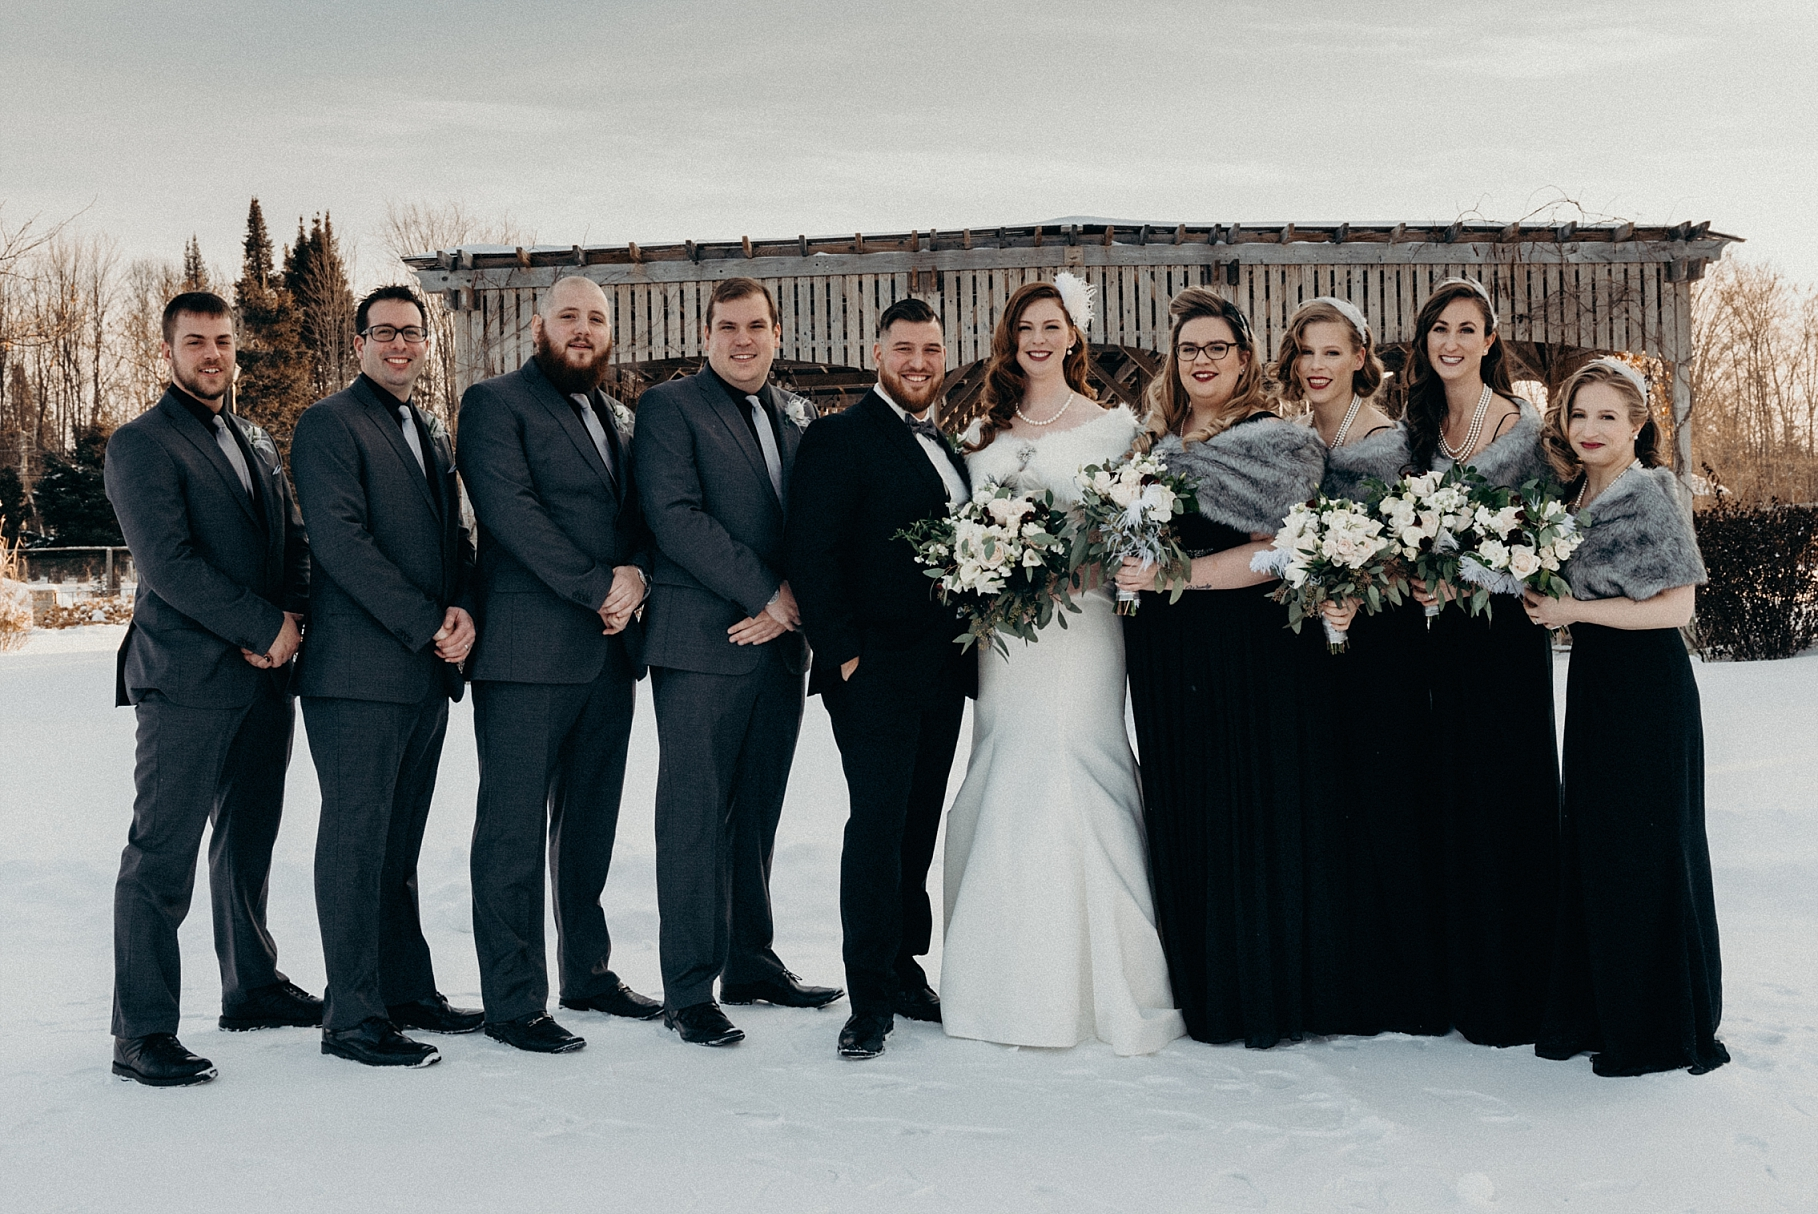 Orchard View Wedding by Mocha Tree Studios Ottawa Wedding and Engagement Photographer and Videographer Dark Moody Intimate Authentic Modern Romantic Cinematic Best Candid